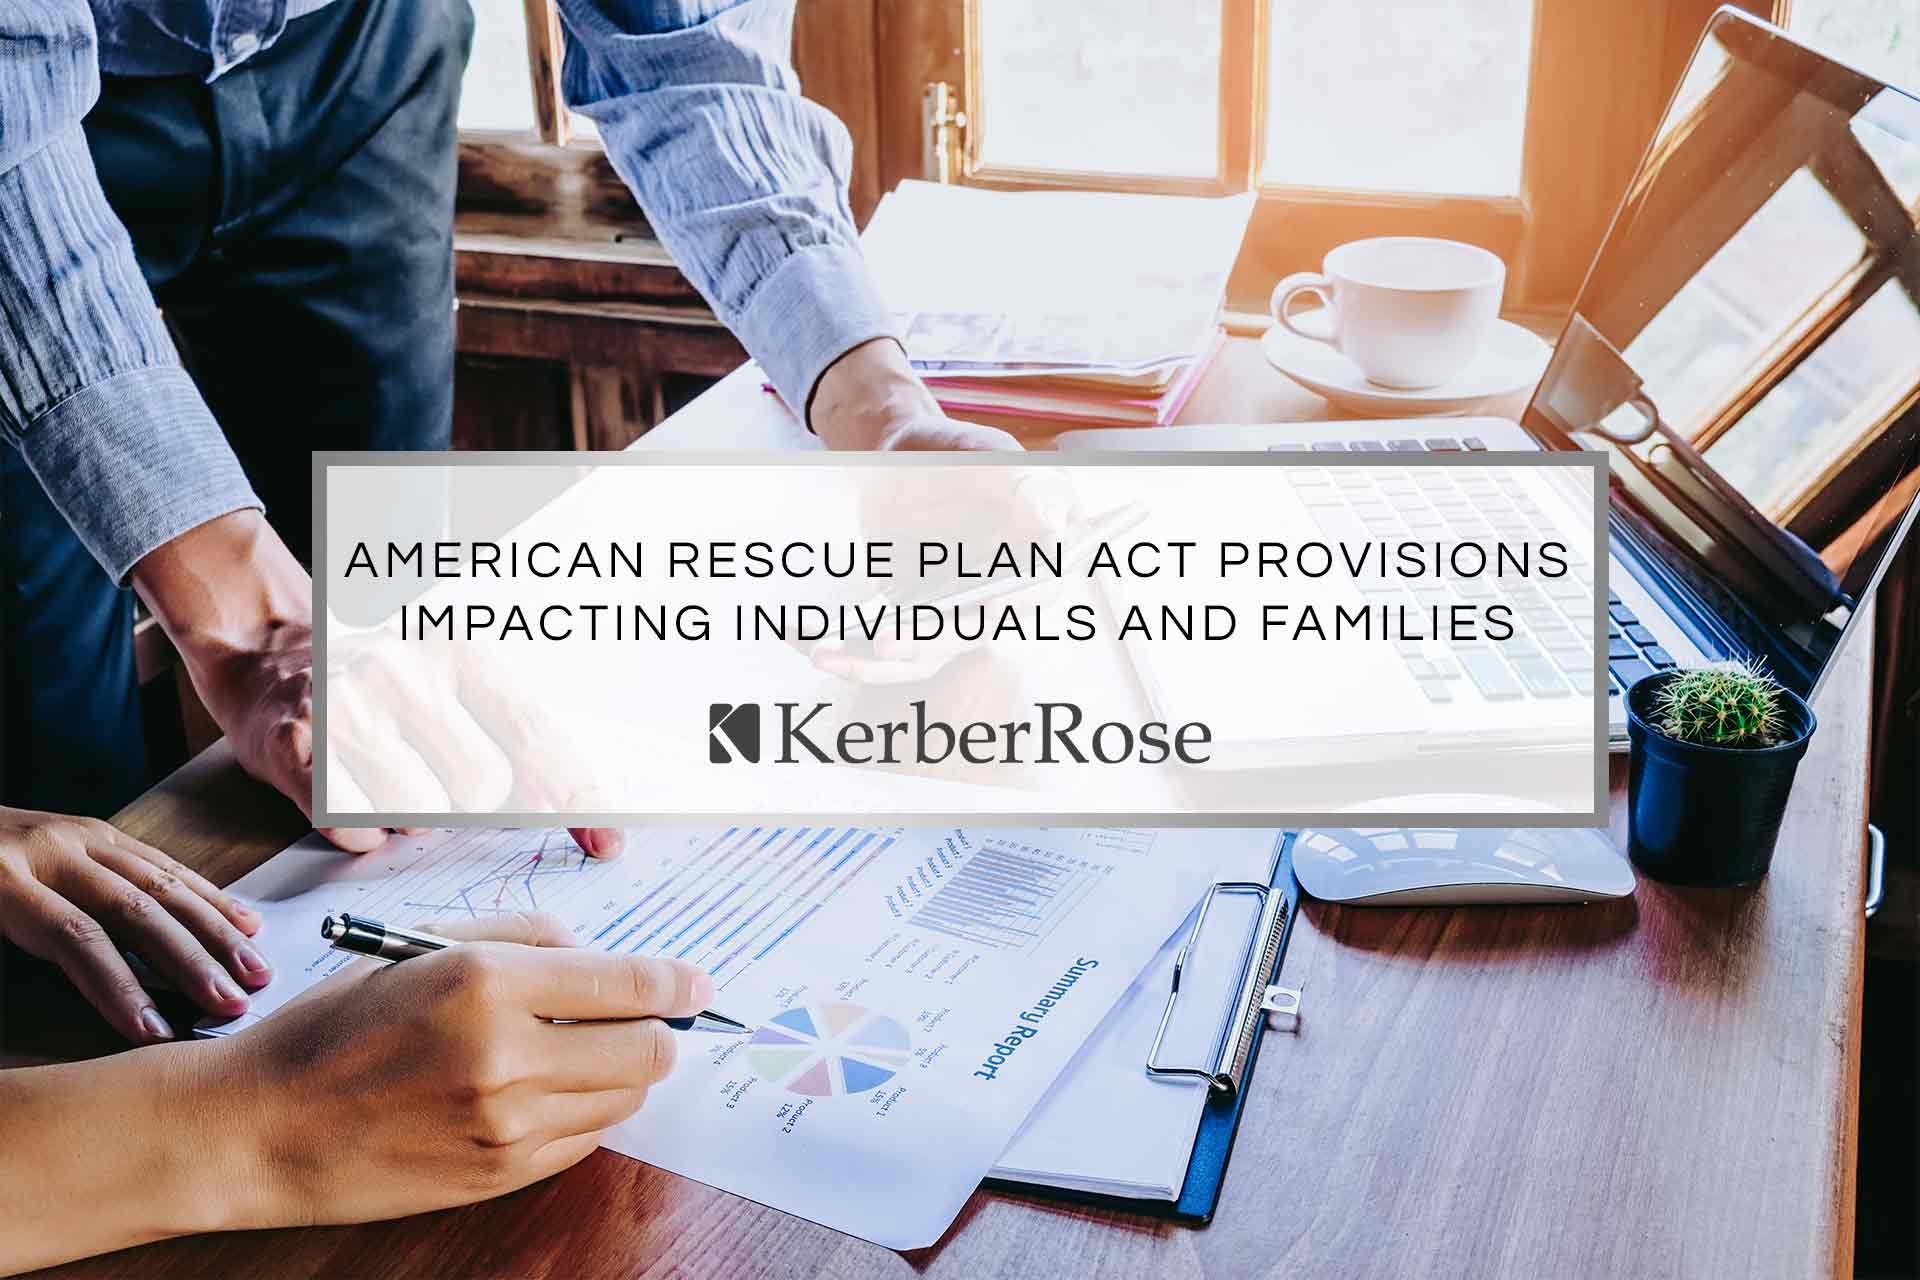 American Rescue Plan Act Provisions Impacting Individuals and Families